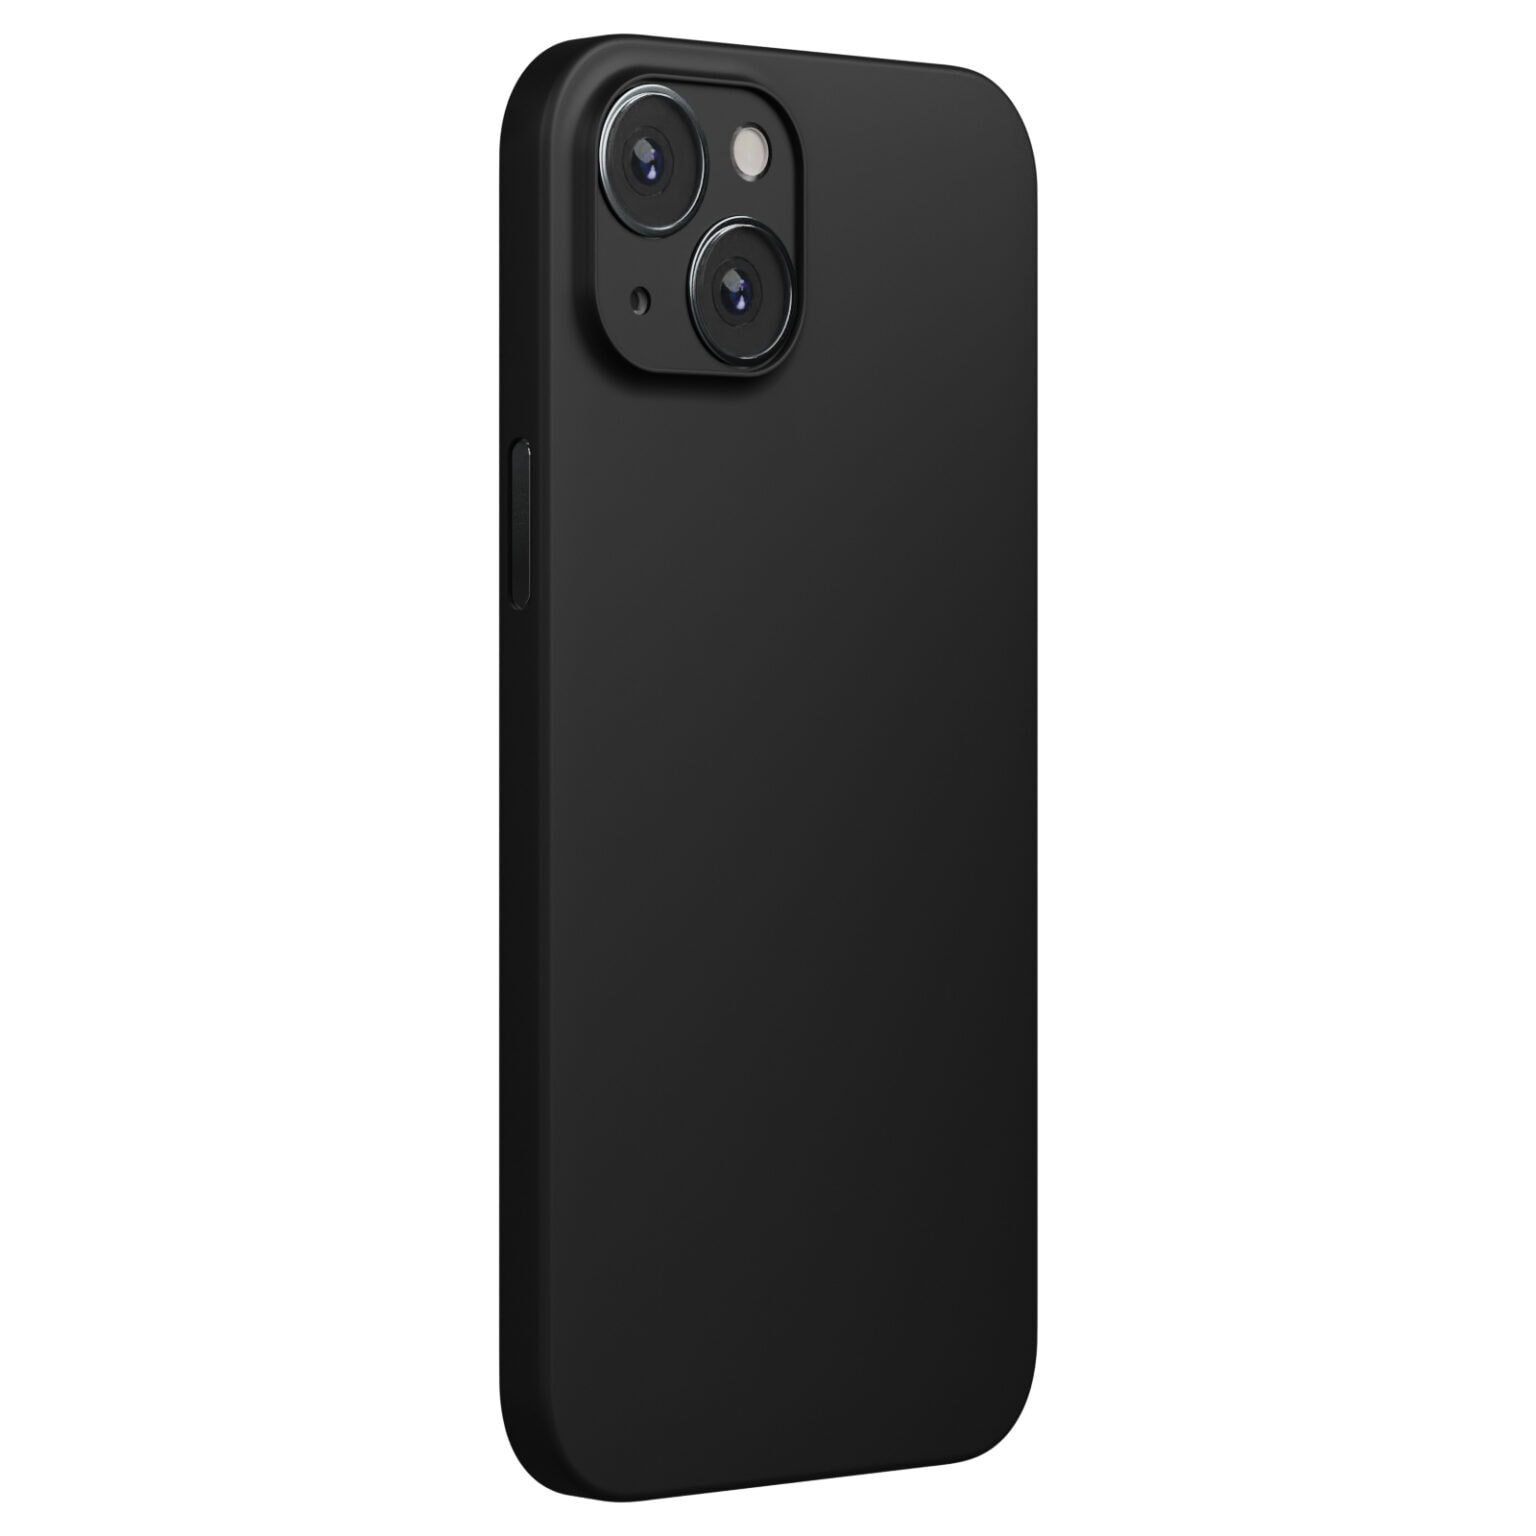 PHNX tthin cases for iPhone 13 are sleek but protective.